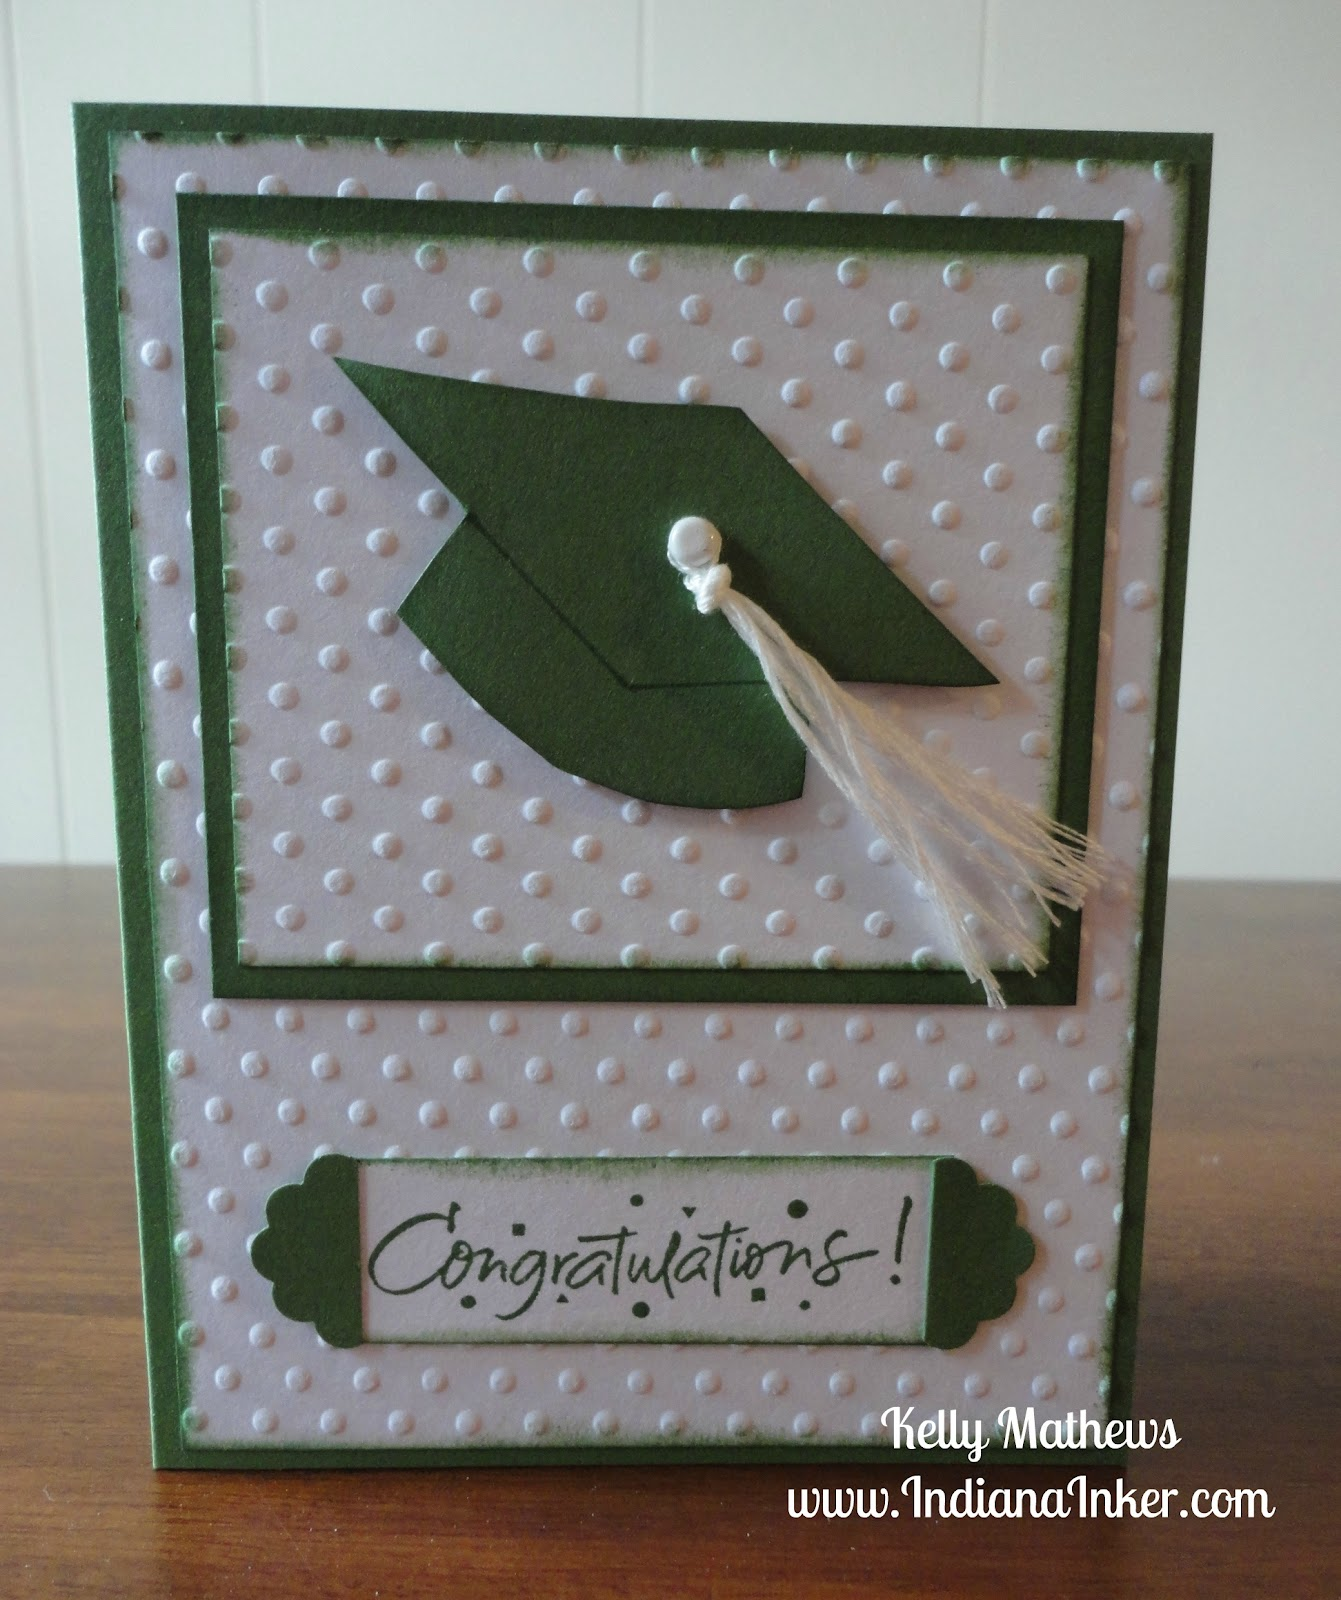 Indiana Inker Graduation Card